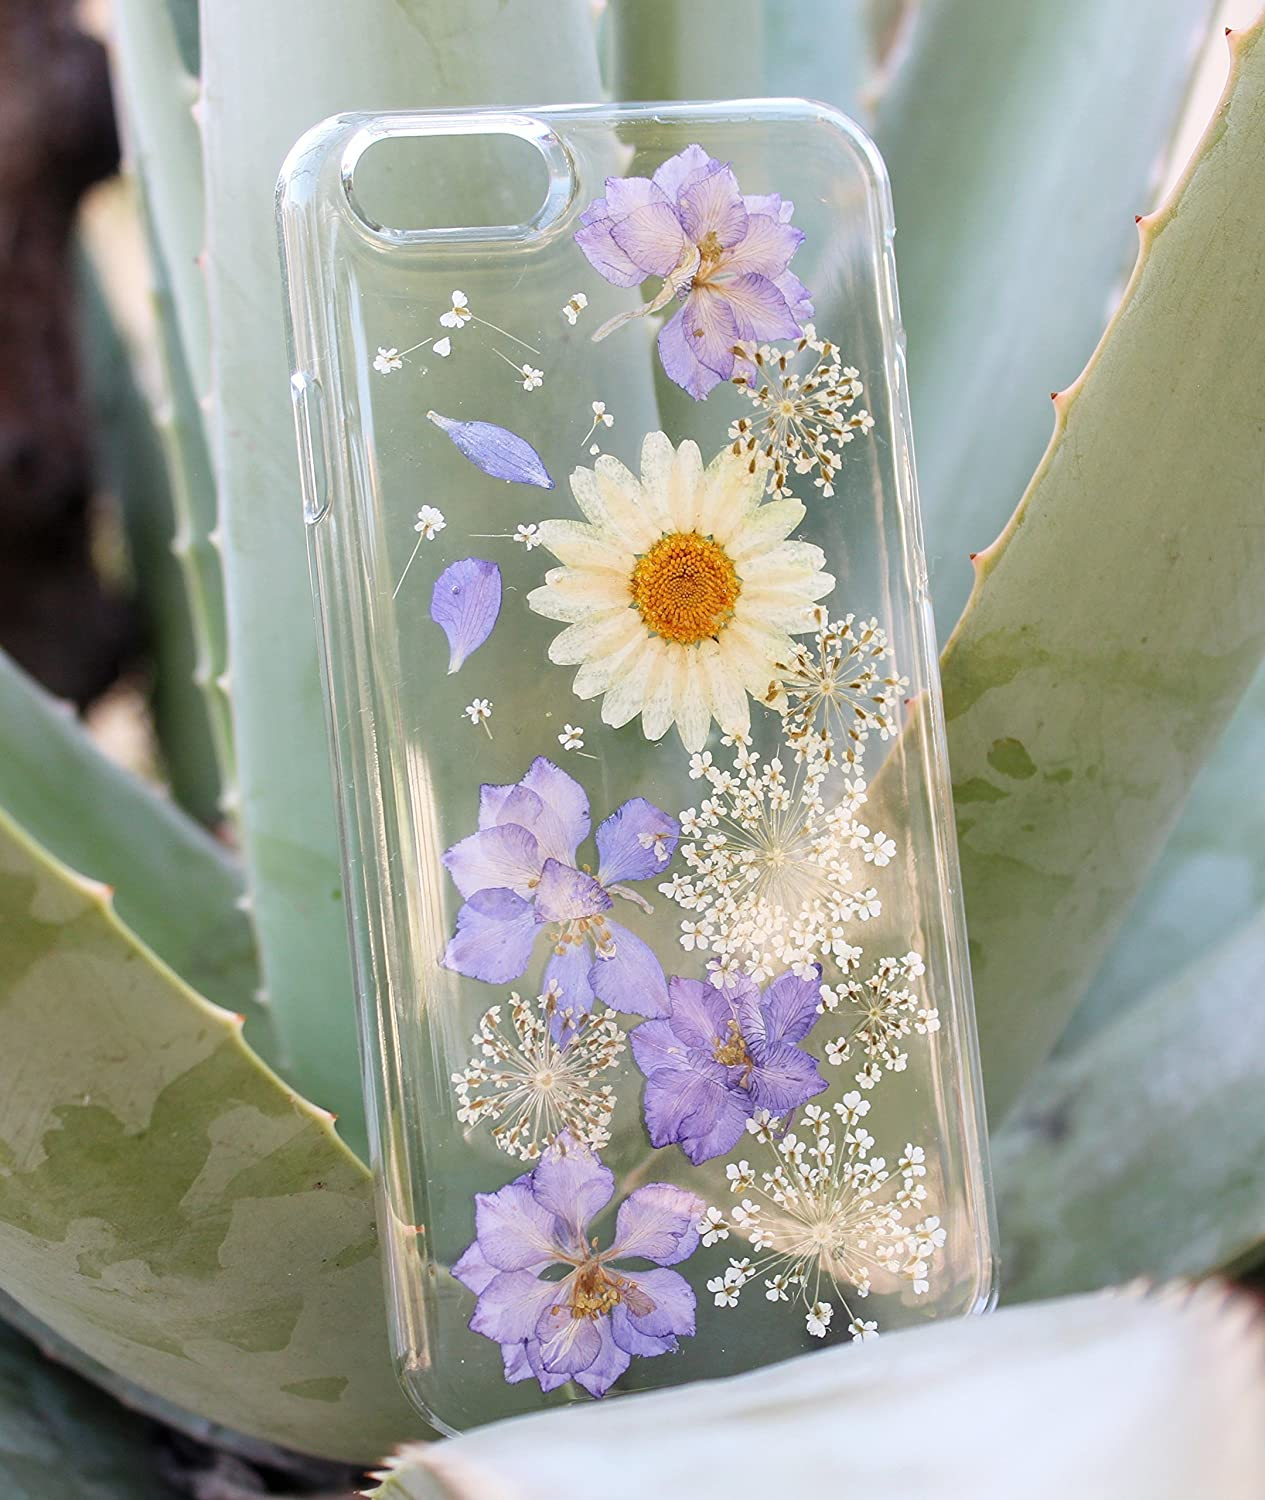 Purple Passion Flowers LG V20 V30 Phone Case- Pressed Dried Flowers On LG G6, LG G3 Crystal Clear Snap on Case - Real Flowers HTC A9, Sony XA, Sony Xperia Z3, Z3 Mini, Z5, Z5 Mini Phone Cover